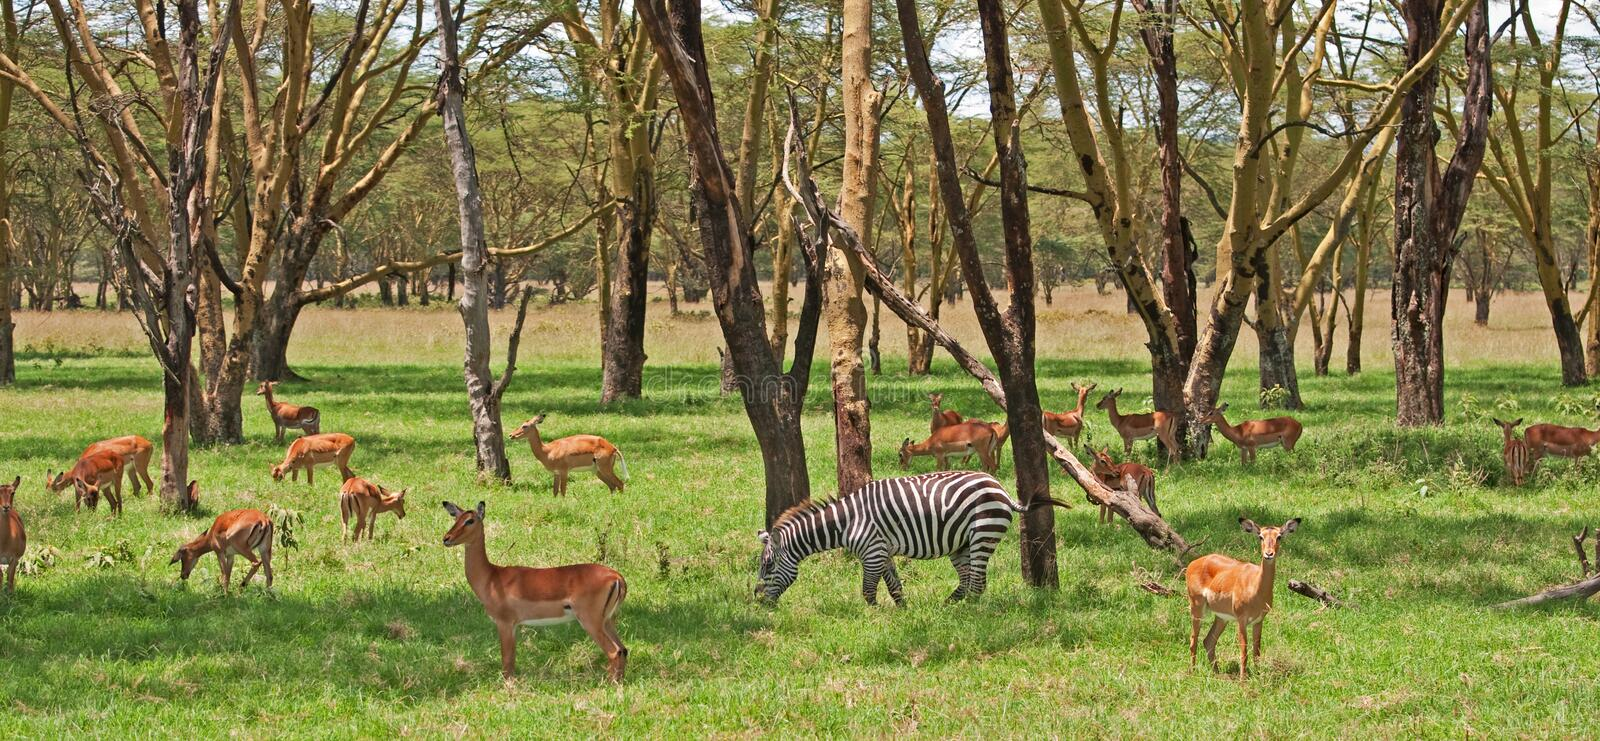 Zebra and Grant Gazelle stock photos